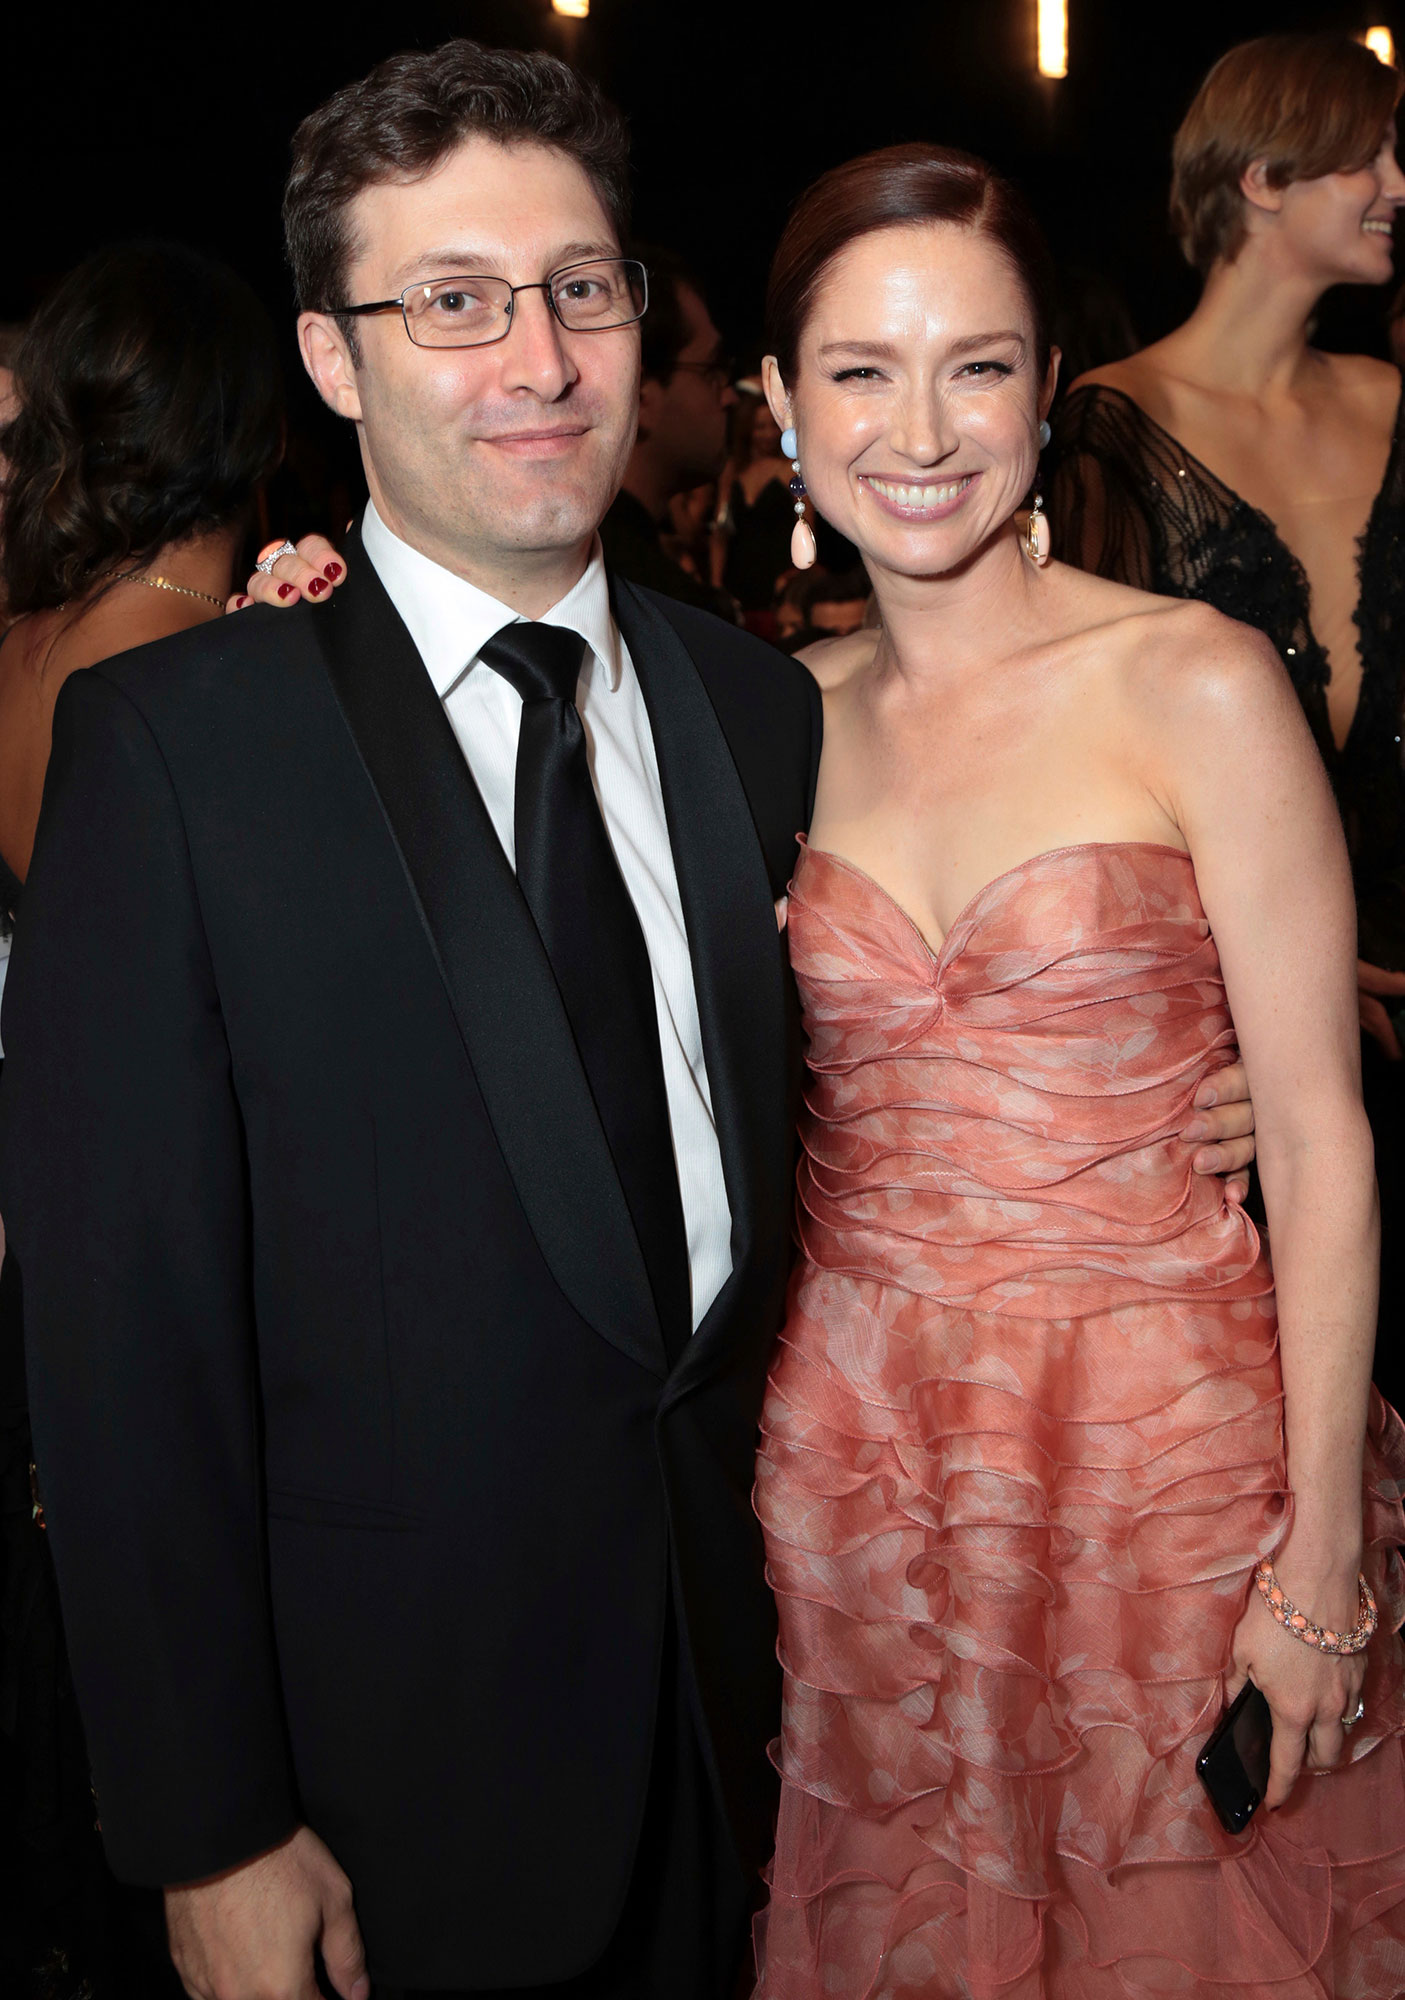 Ellie Kemper Has Date Nights With Her Husband to 'Refocus'